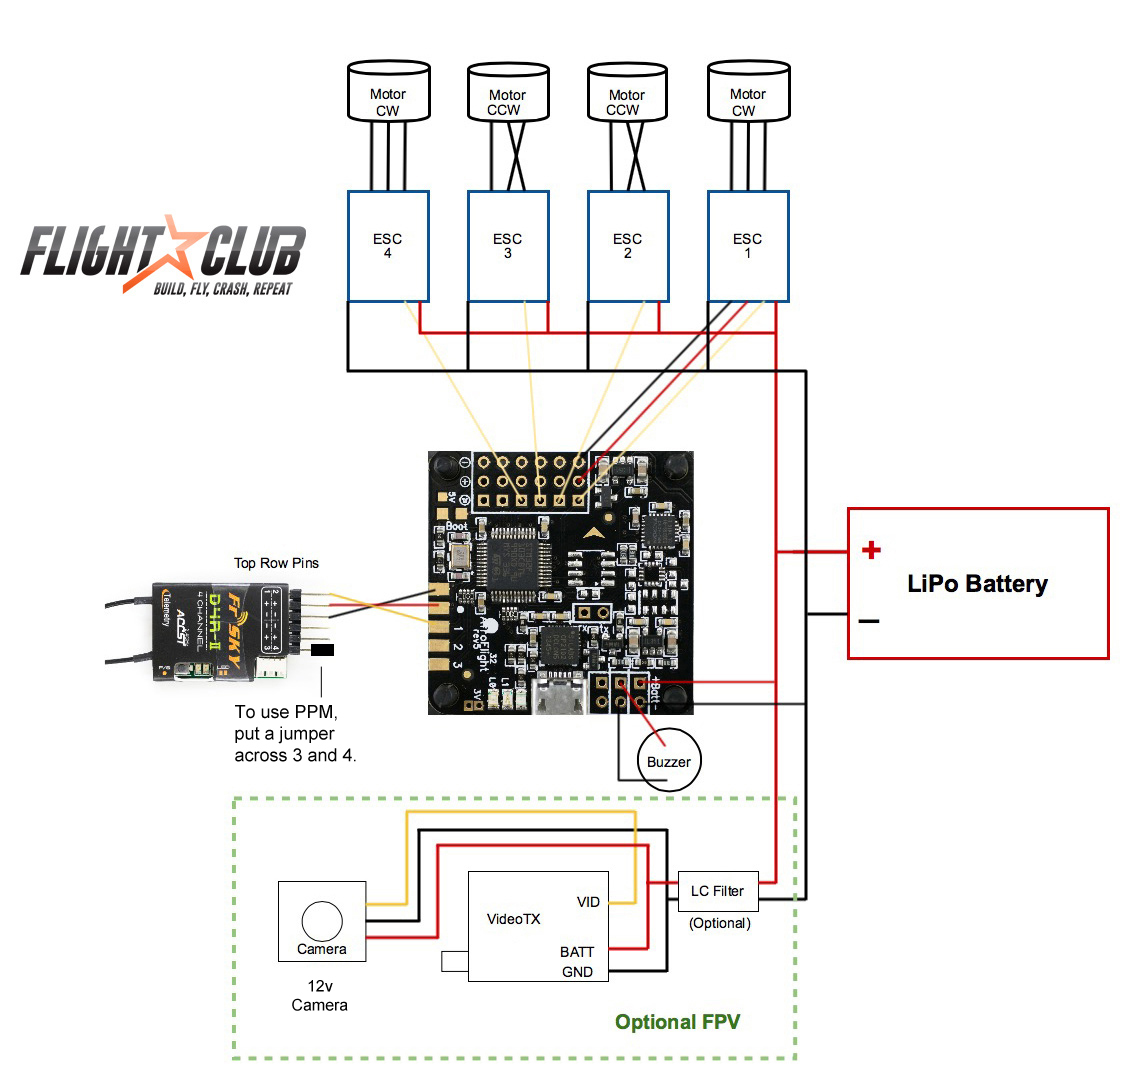 Fpv Quadcopter Build Schematic on Cc3d Esc Wiring Diagram